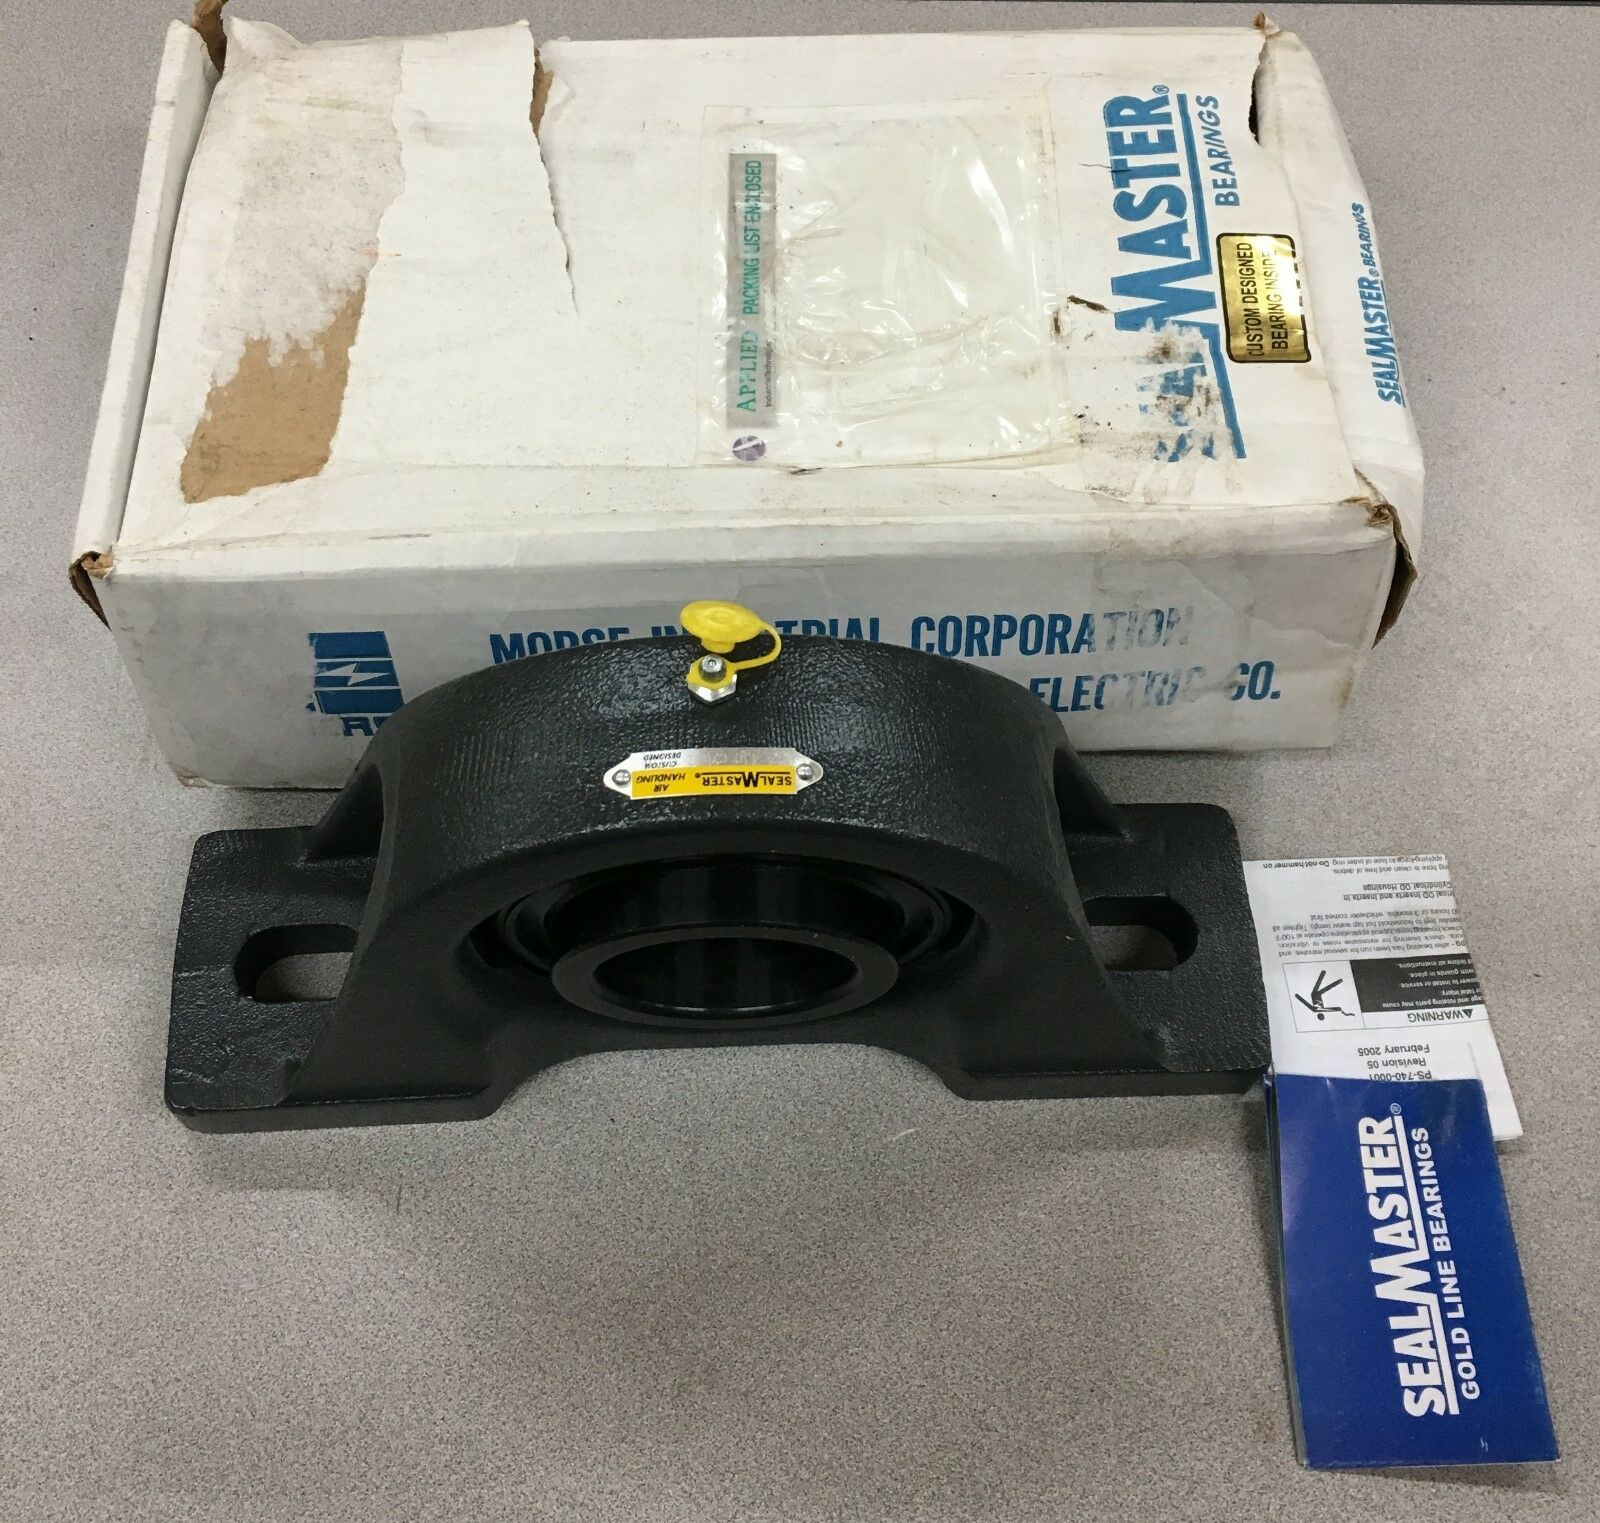 NEW IN BOX SEALMASTER PILLOW BLOCK BEARING 2-11/16